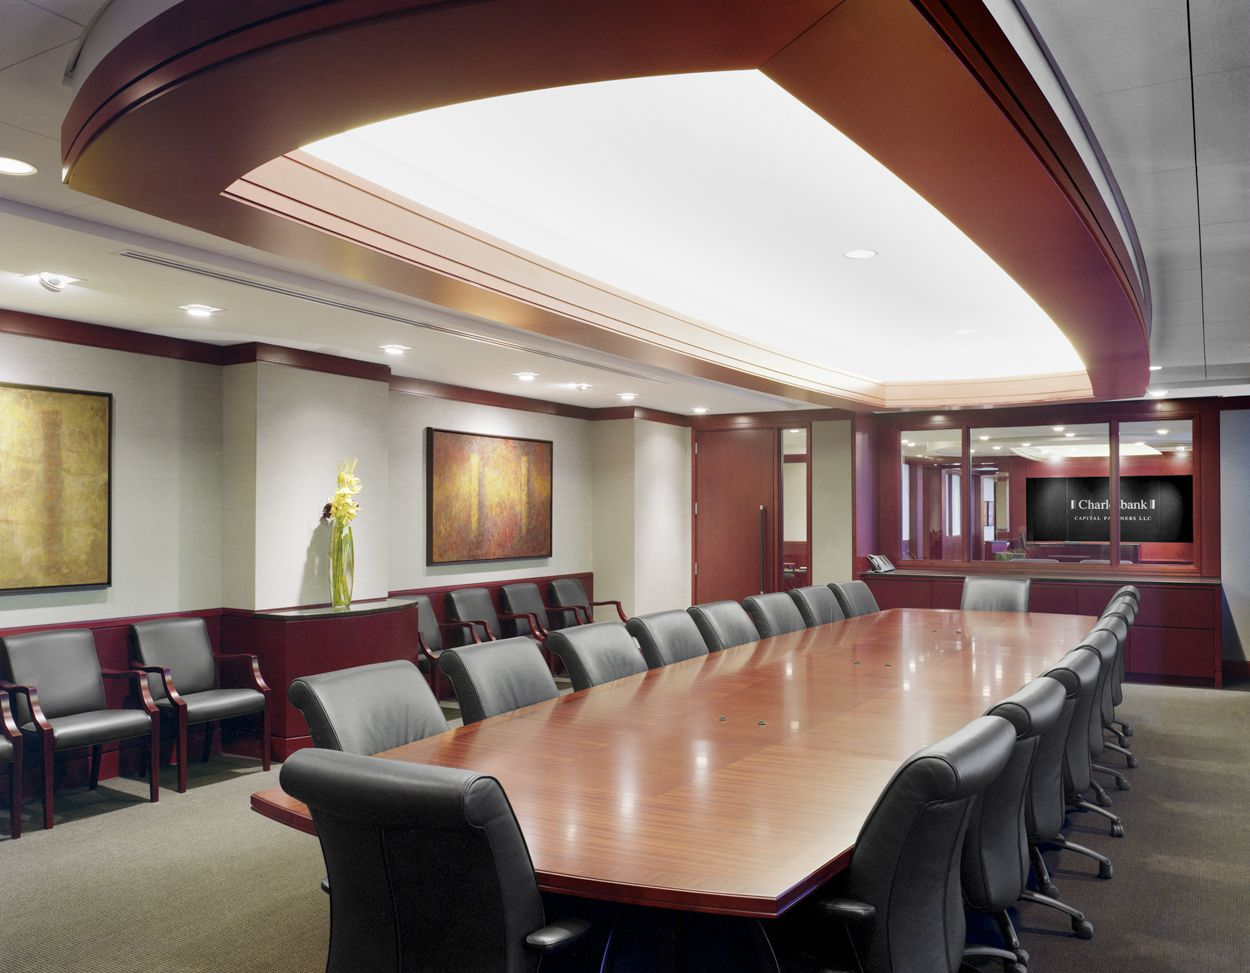 Charlesbank Capital Partners Boardroom